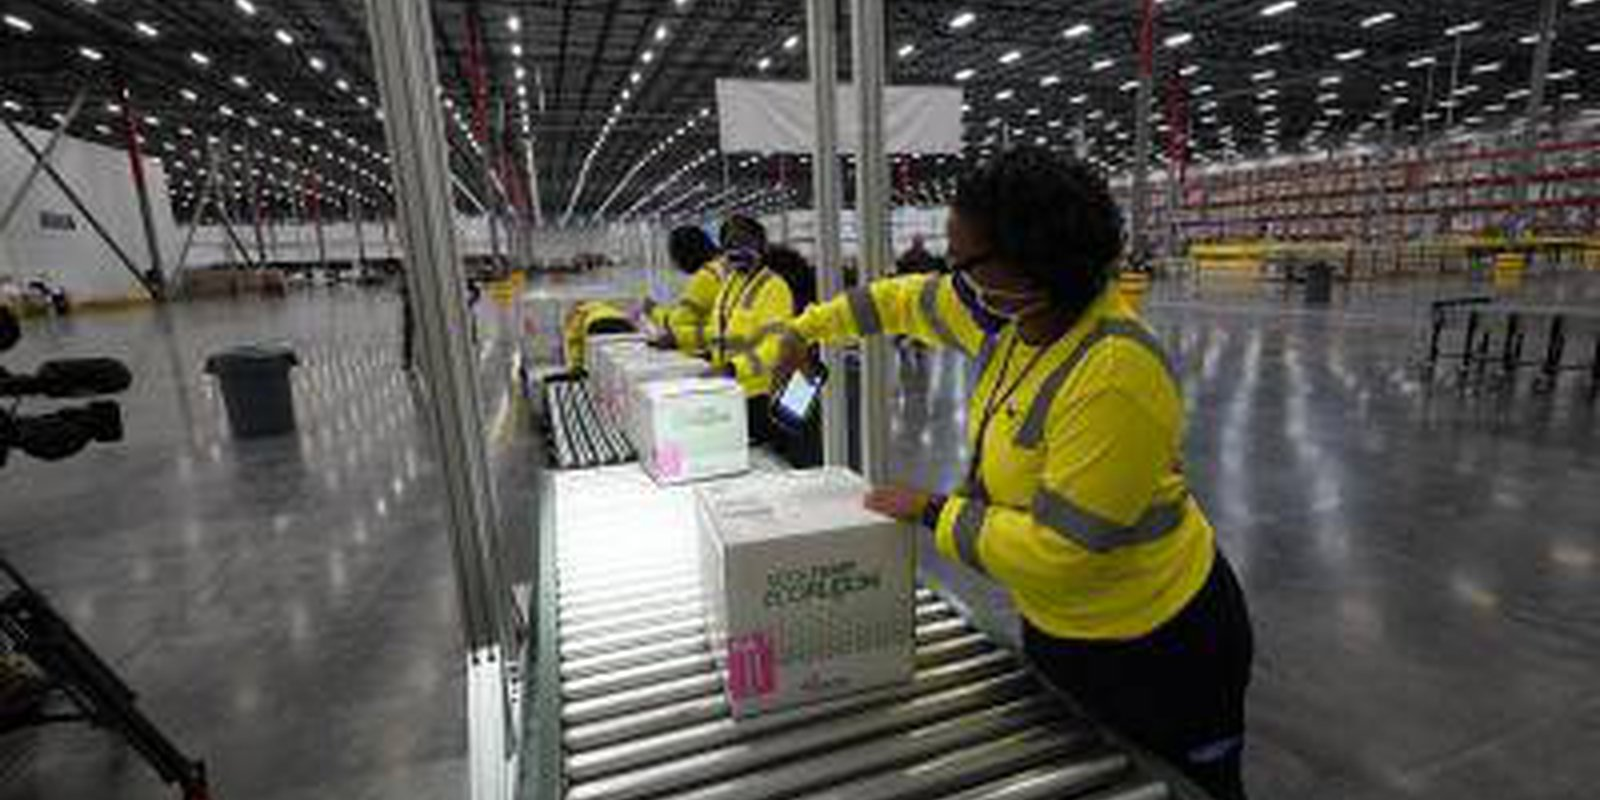 Image — Boxes containing the Moderna COVID-19 vaccine are prepared to be shipped at the McKesson distribution center on 20 December 2020 in Olive Branch, Mississippi, USA. Photo credit: Copyright © Paul Sancya/Pool/Getty Images